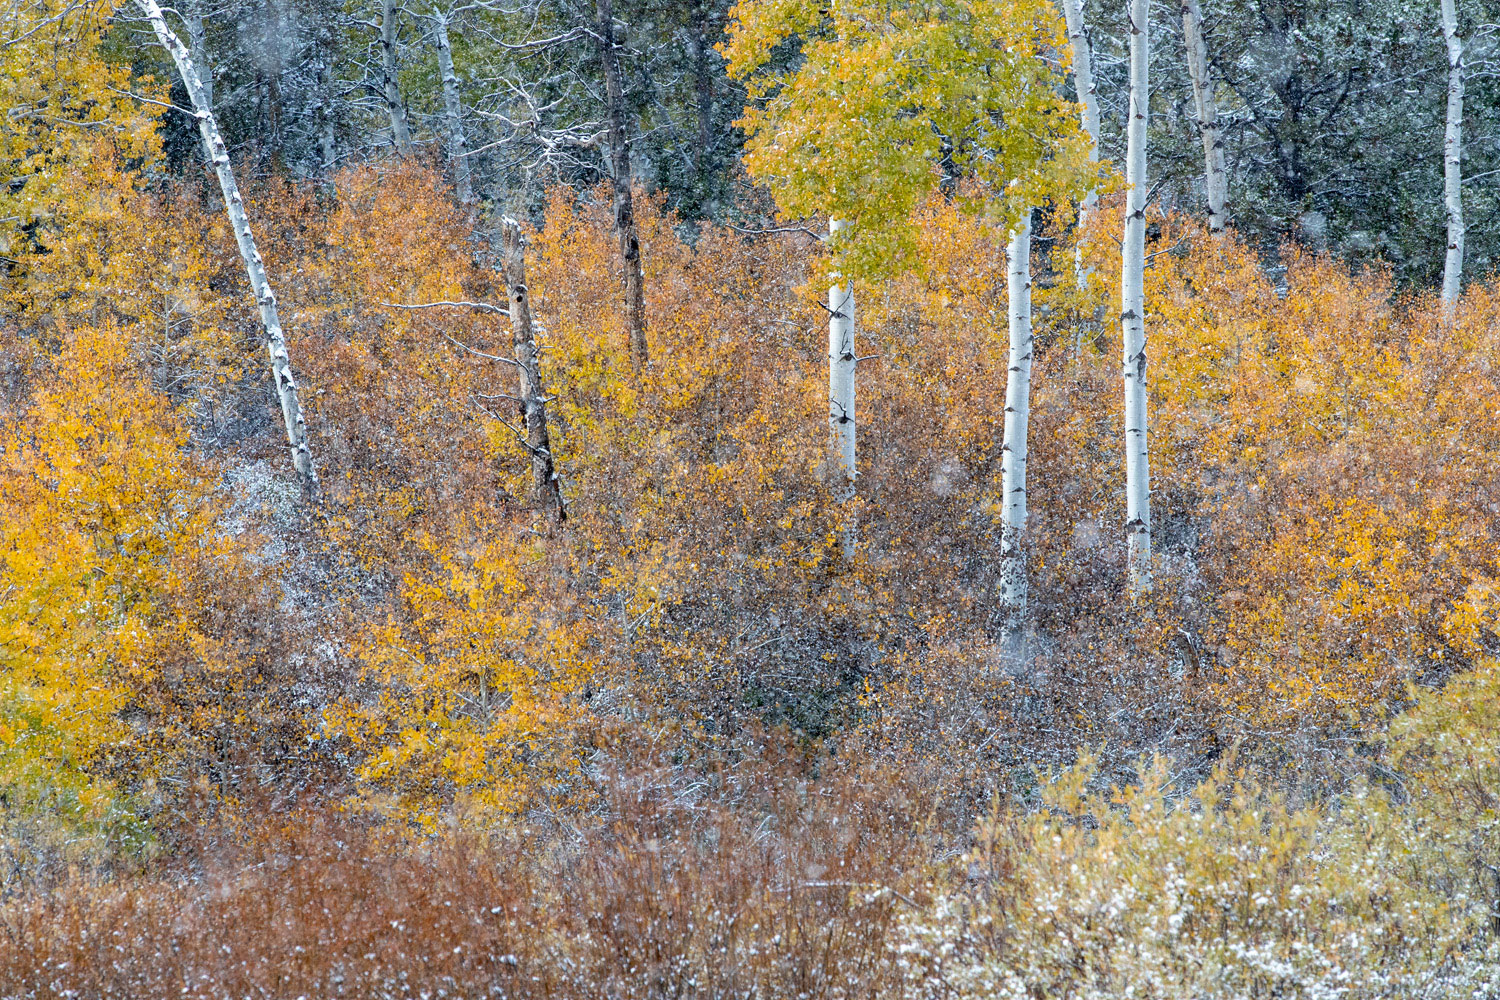 A dusting of snow provides a final piece of jewelry to the golden aspen and cottonwoods.